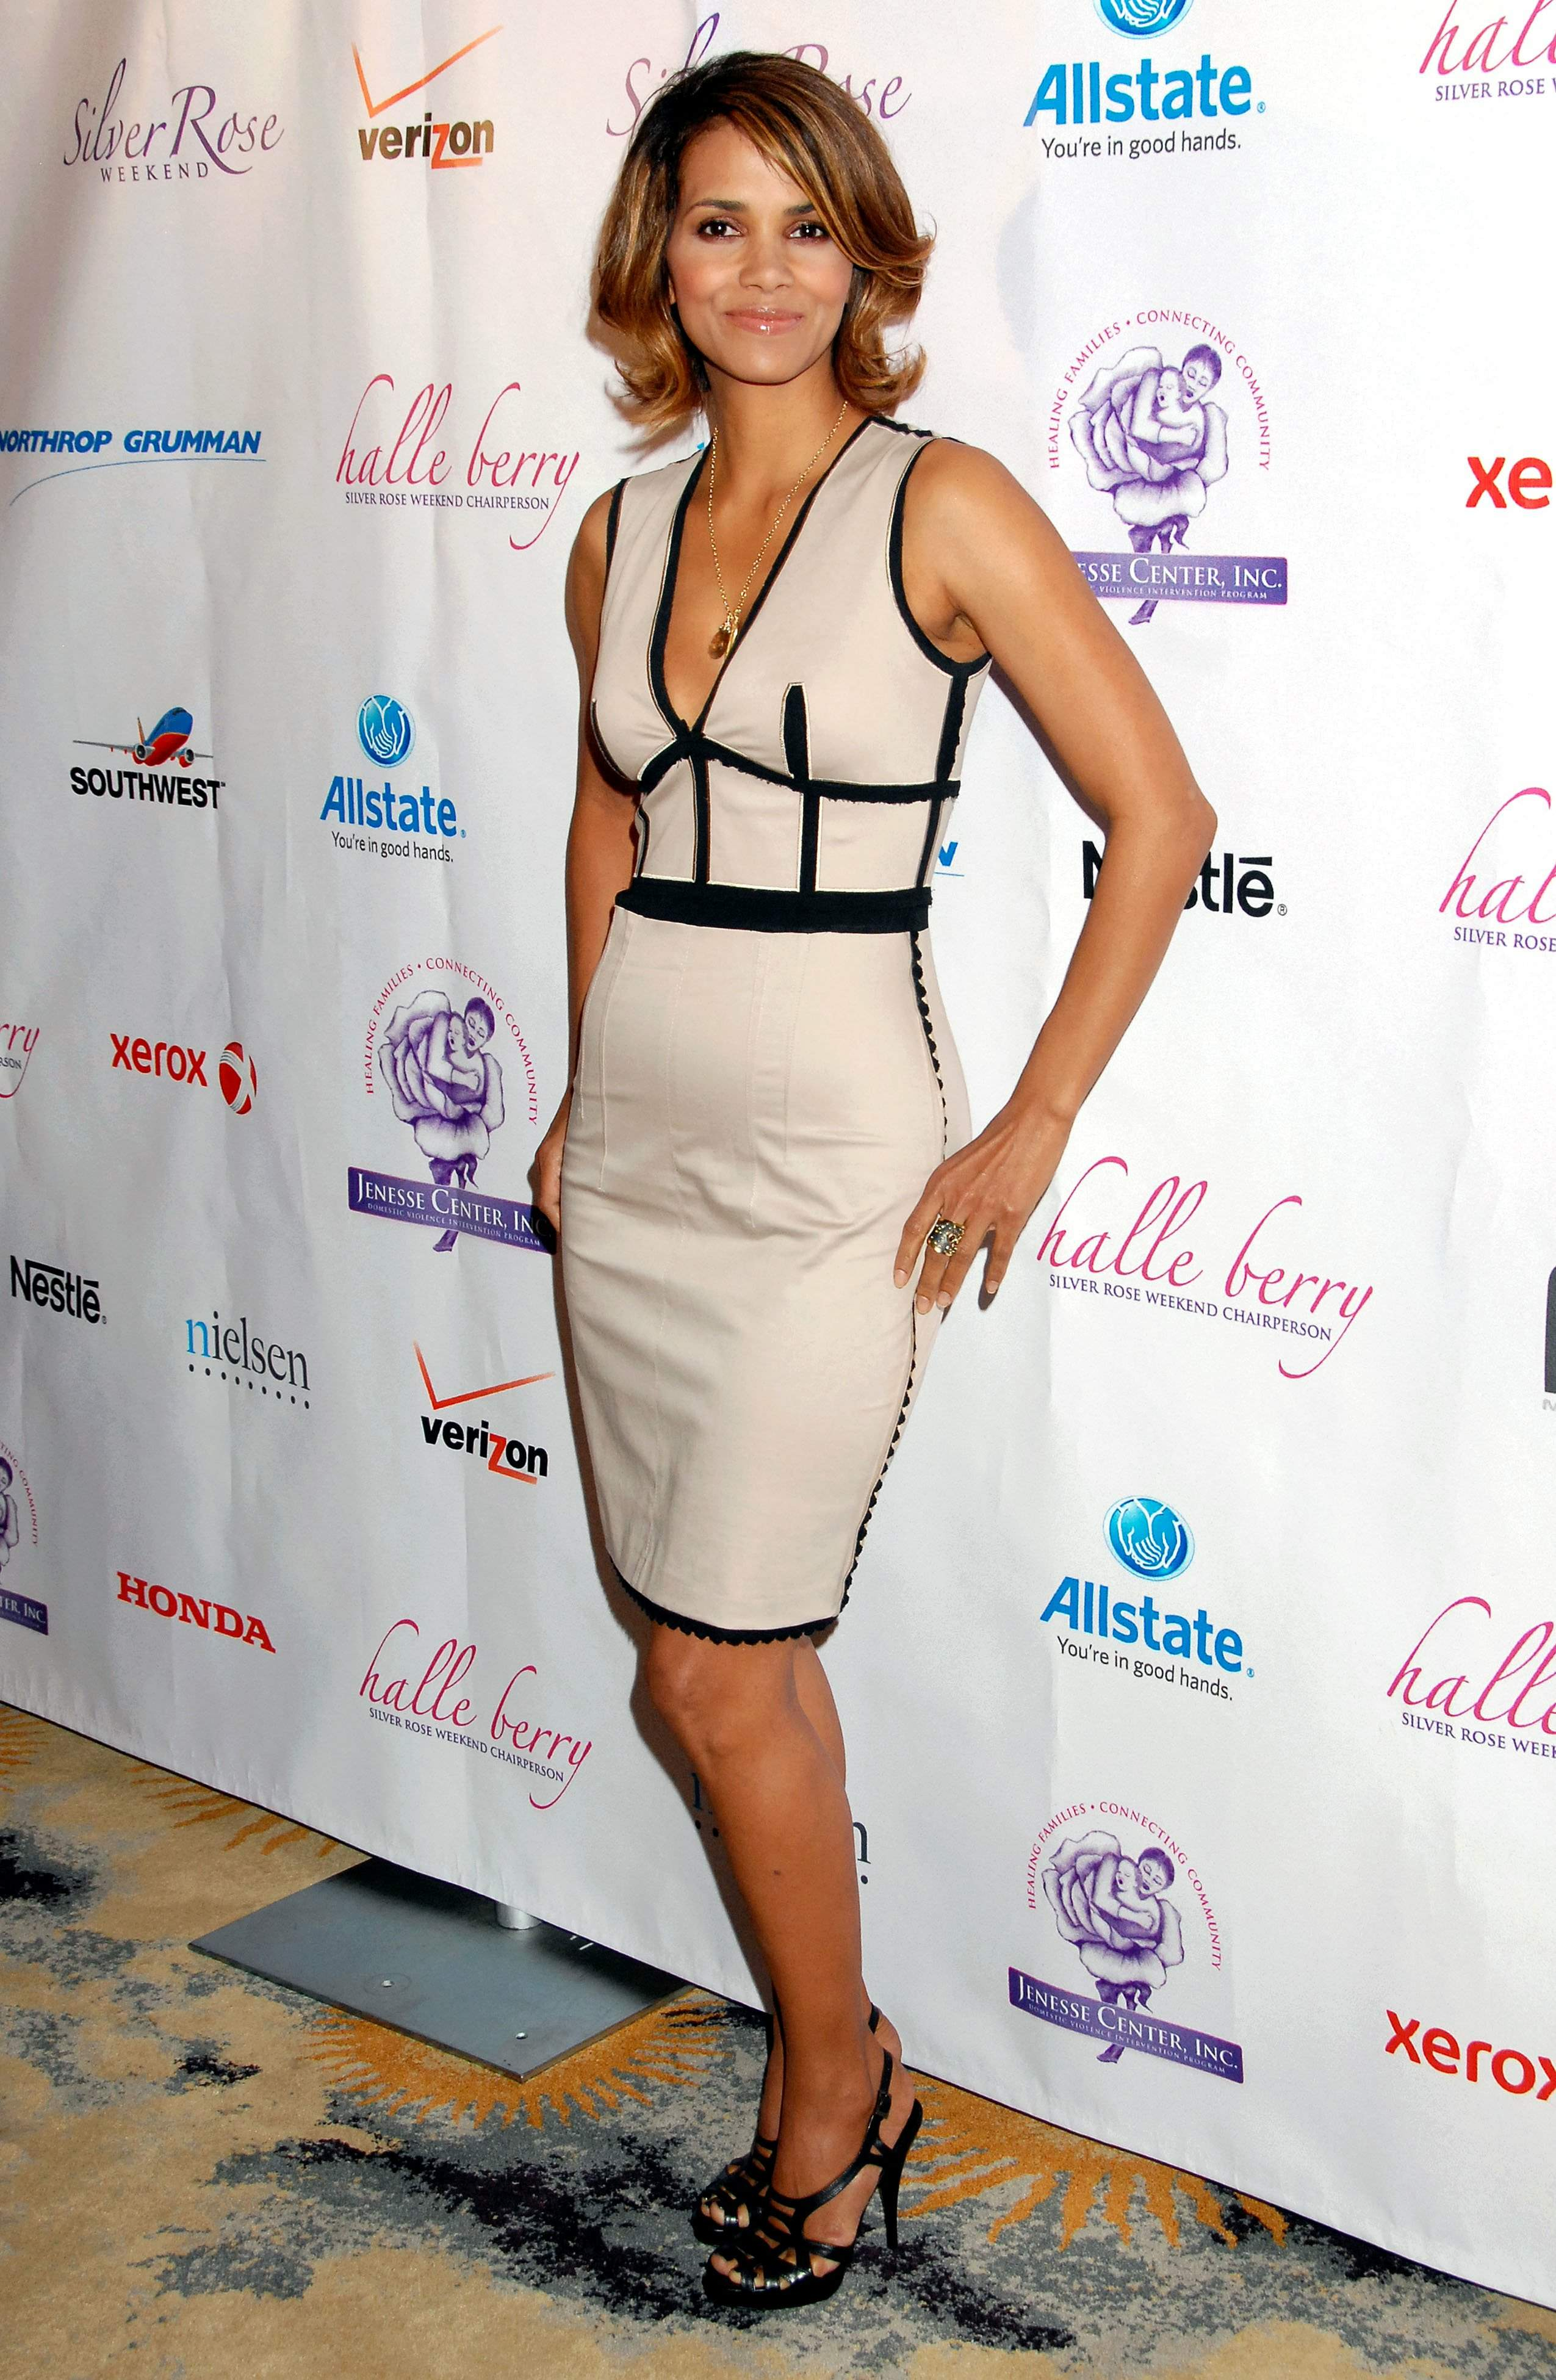 58630_Halle_Berry_2009_Jenesse_Silver_Rose_Gala_Auction_in_Beverly_Hills_23_122_206lo.jpg